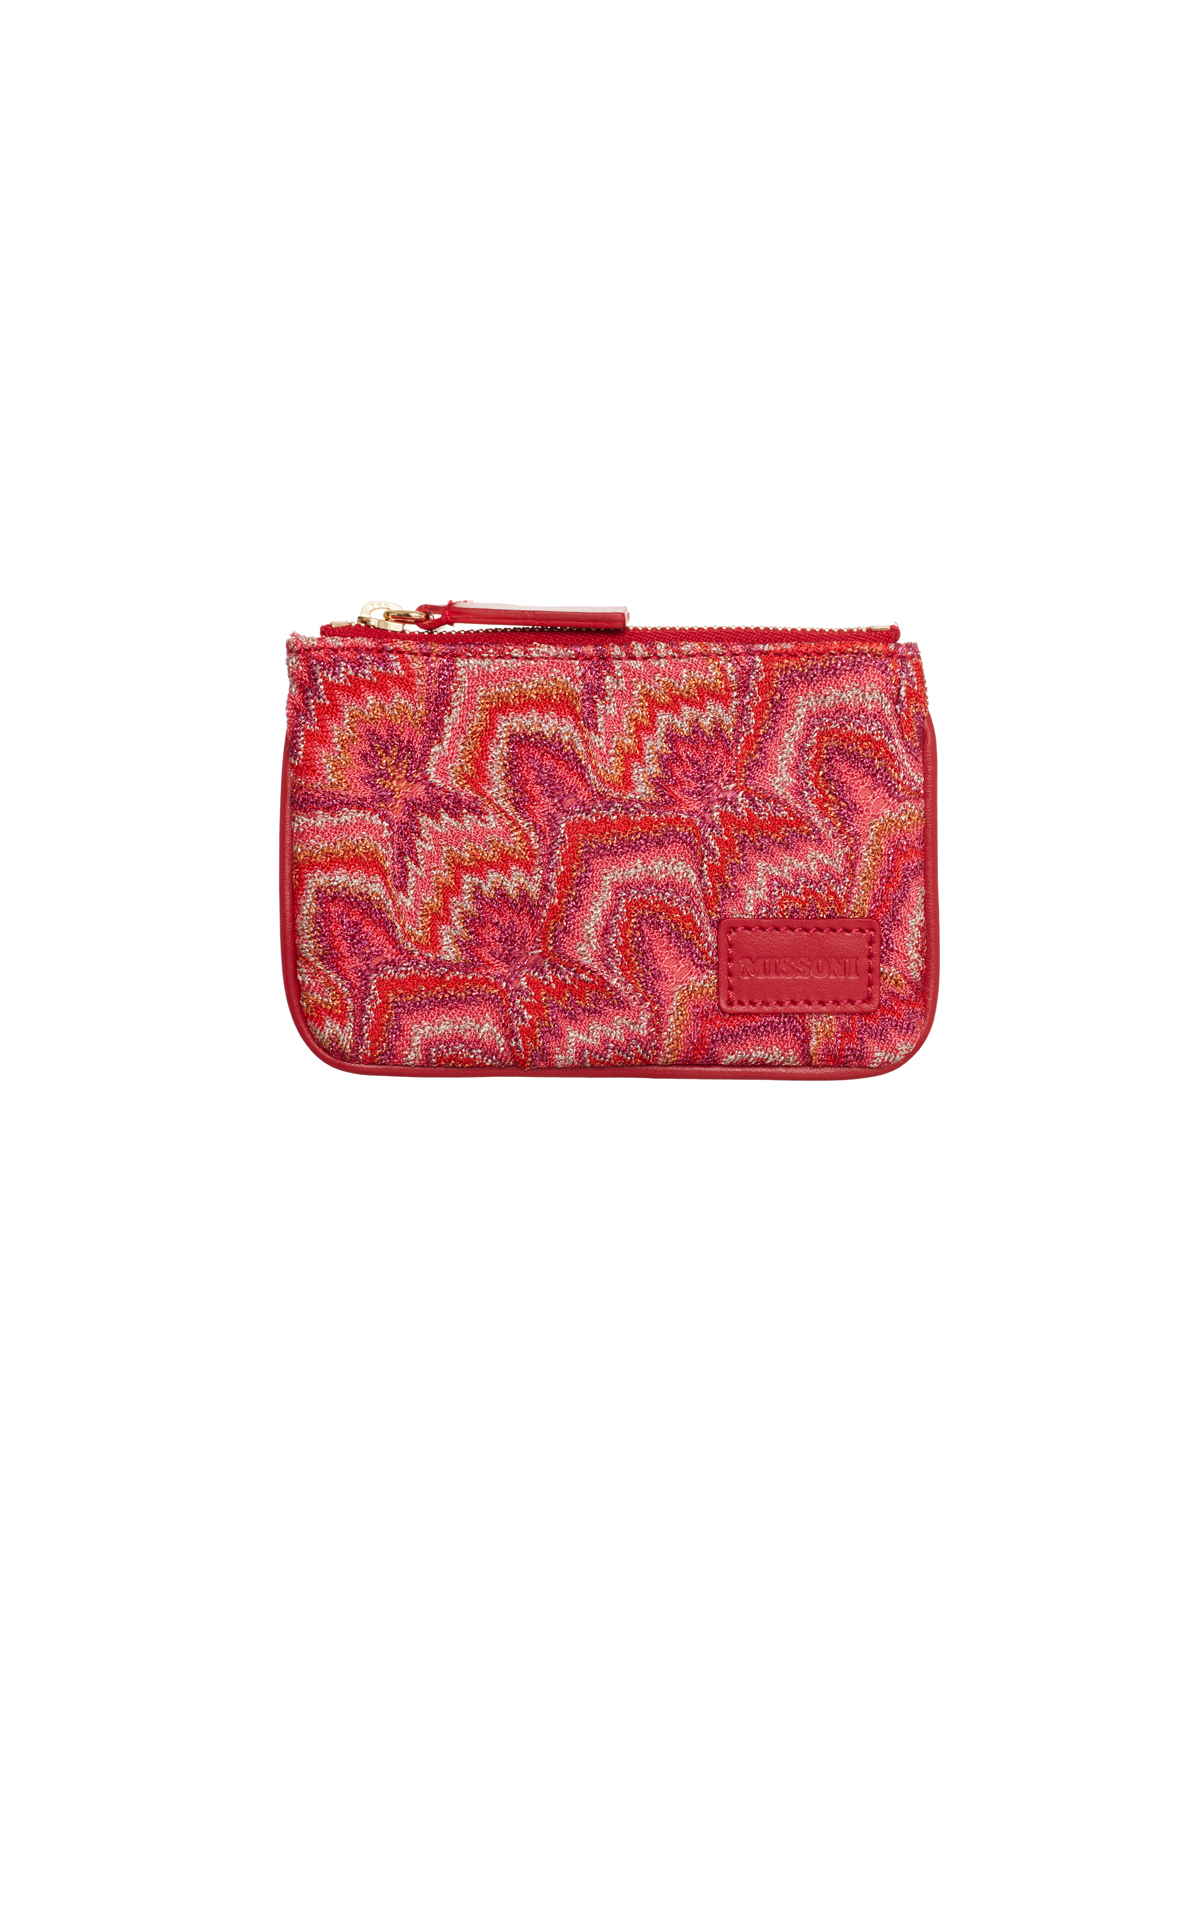 Missoni Sachet bag red from Bicester Village